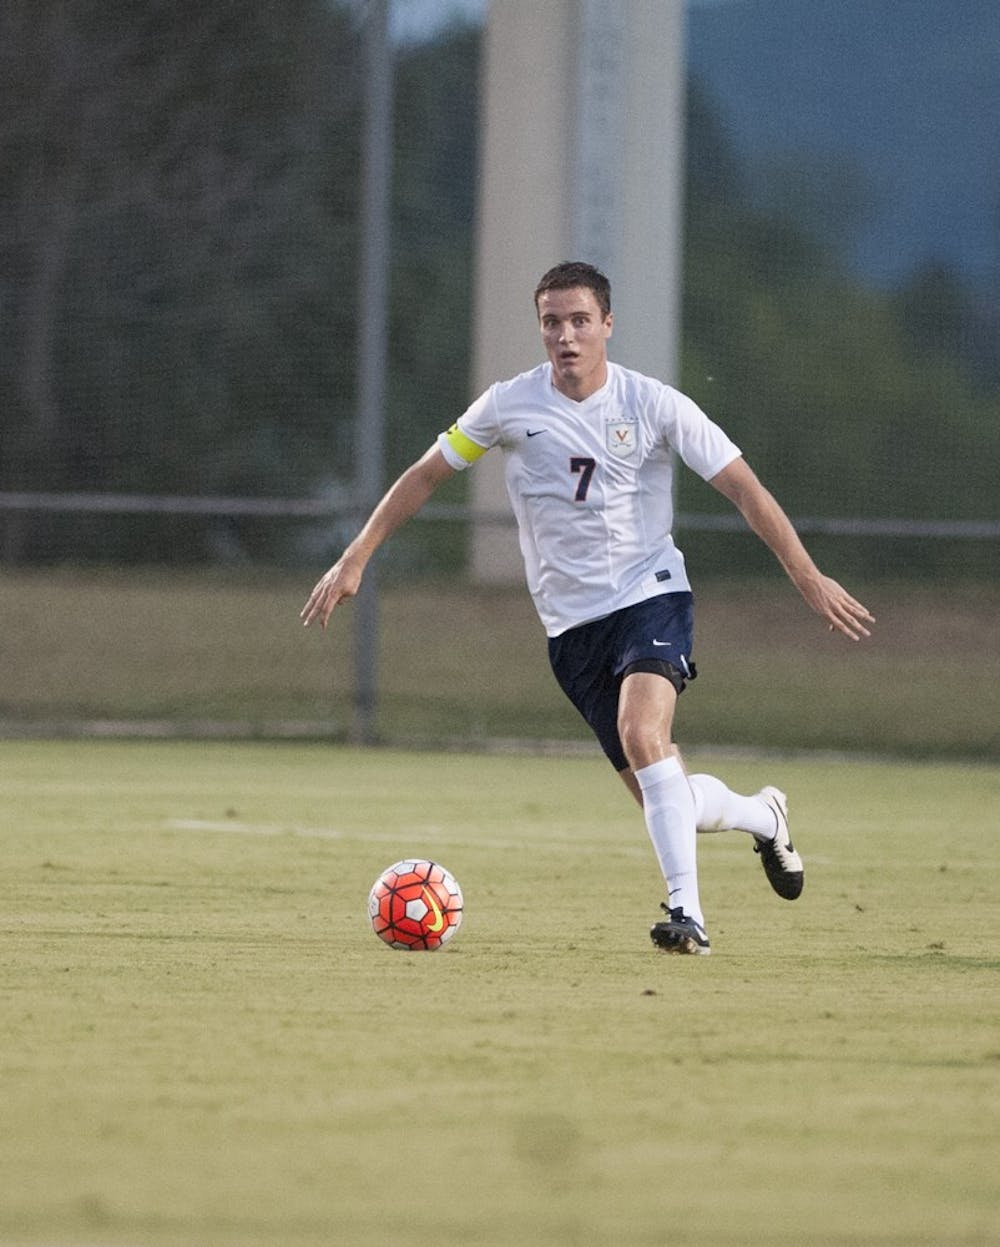 <p>Senior midfielder Todd Wharton has started every game for Virginia this season. His three assists rank second on the team to junior midfielder Patrick Foss.</p>